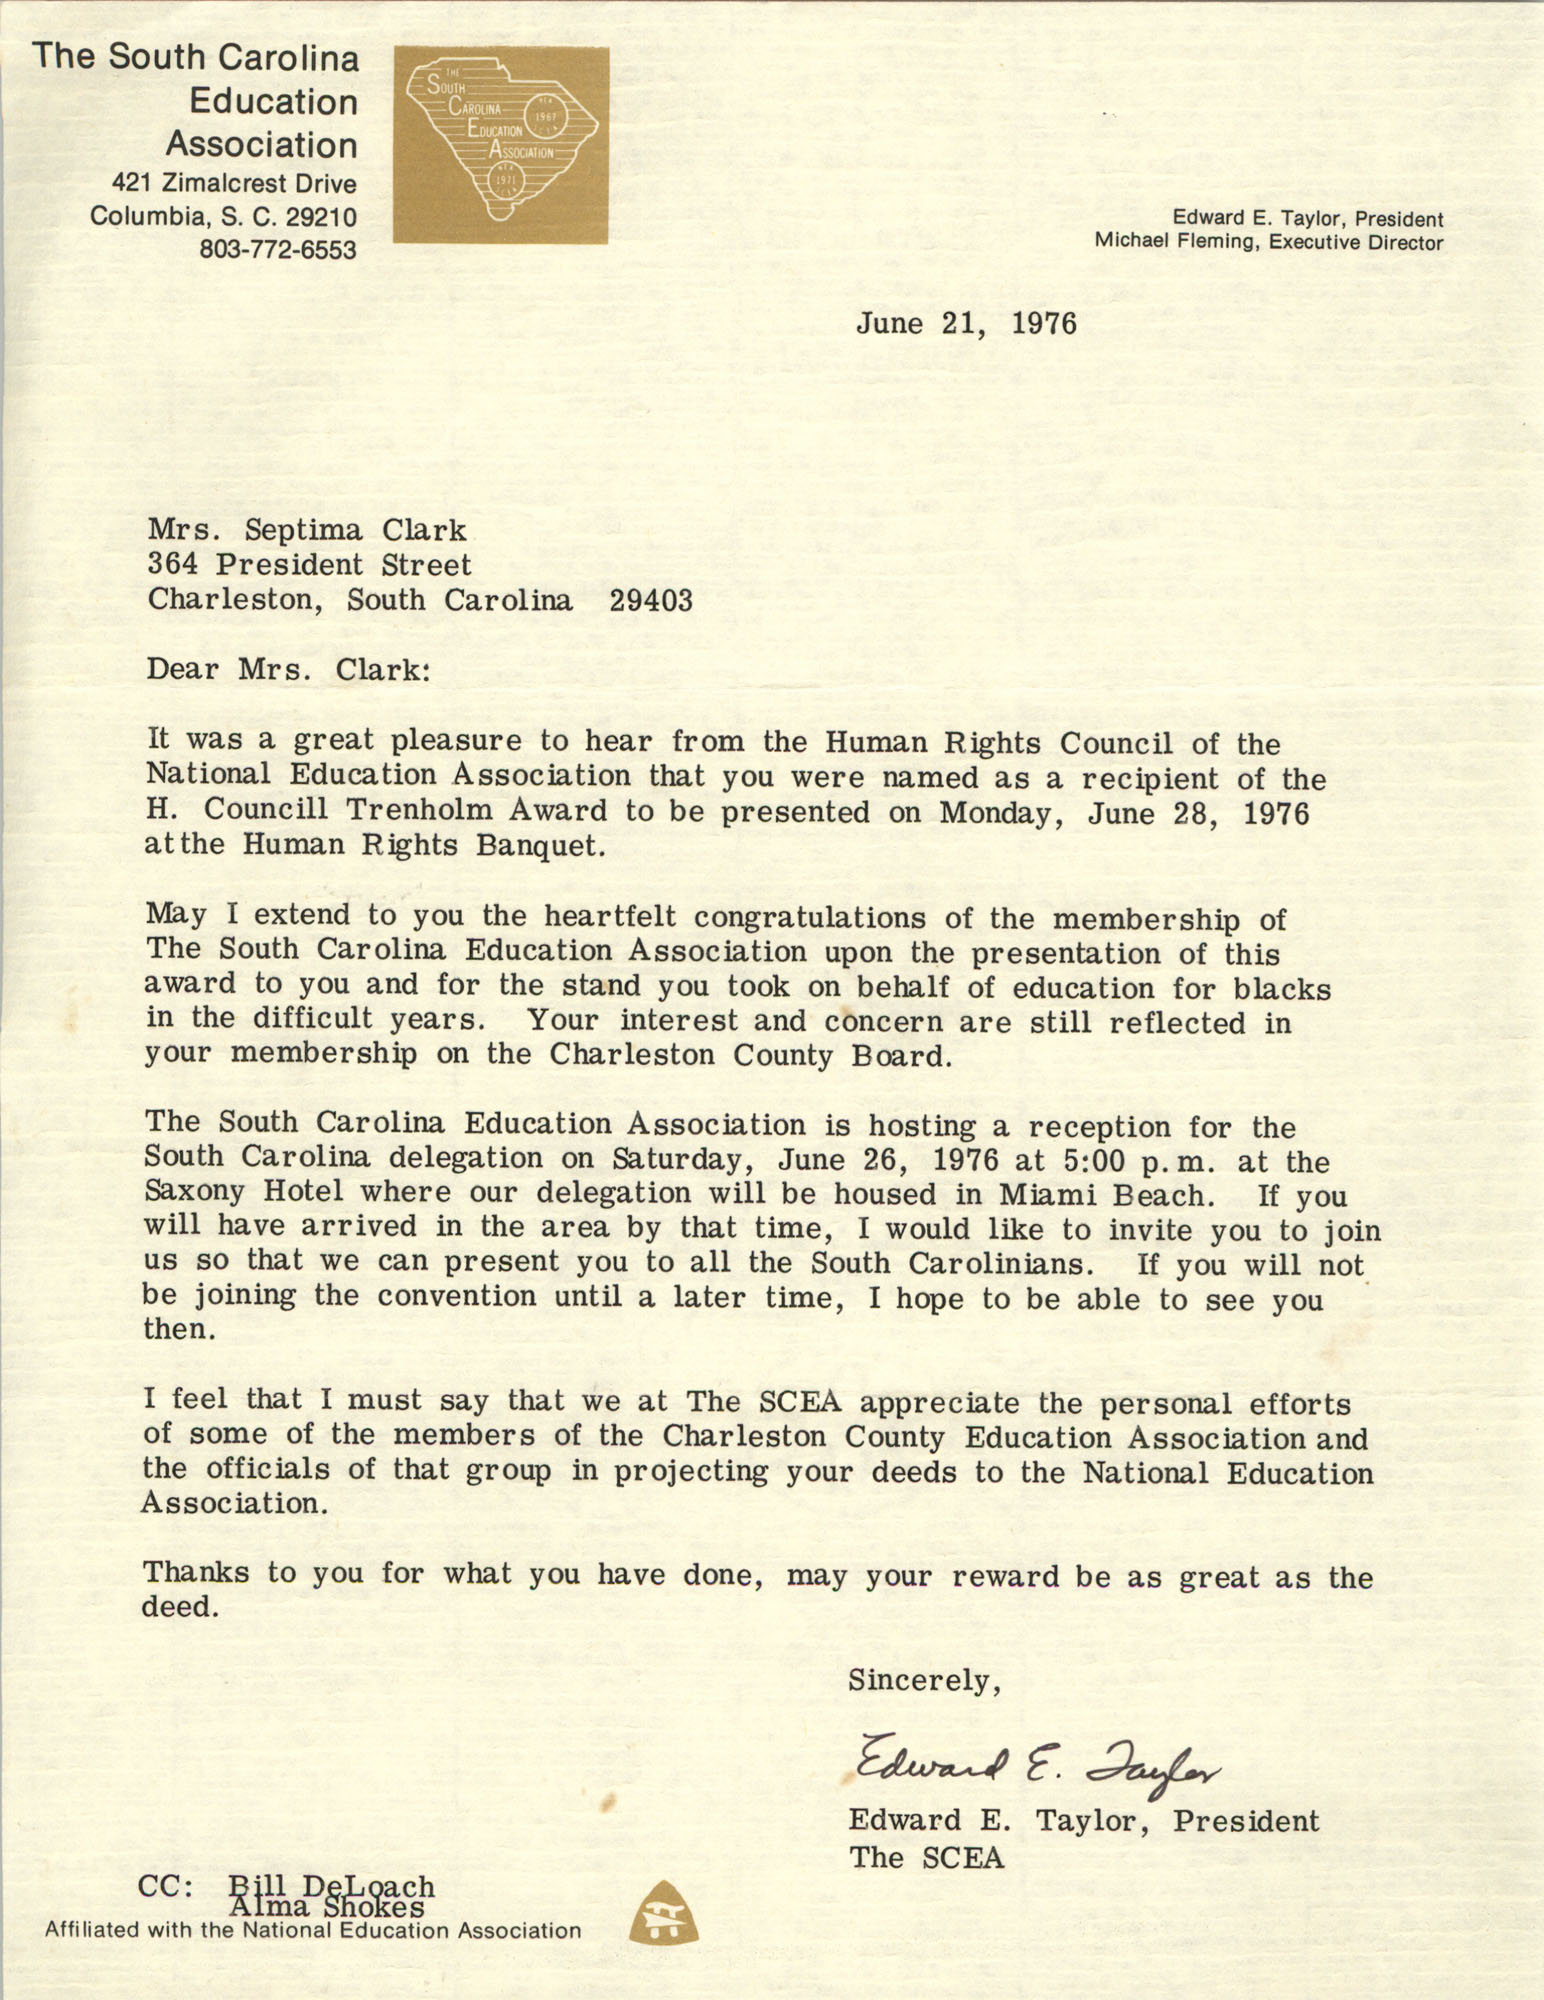 Letter from South Carolina Education Association to Septima P. Clark, June 21, 1976